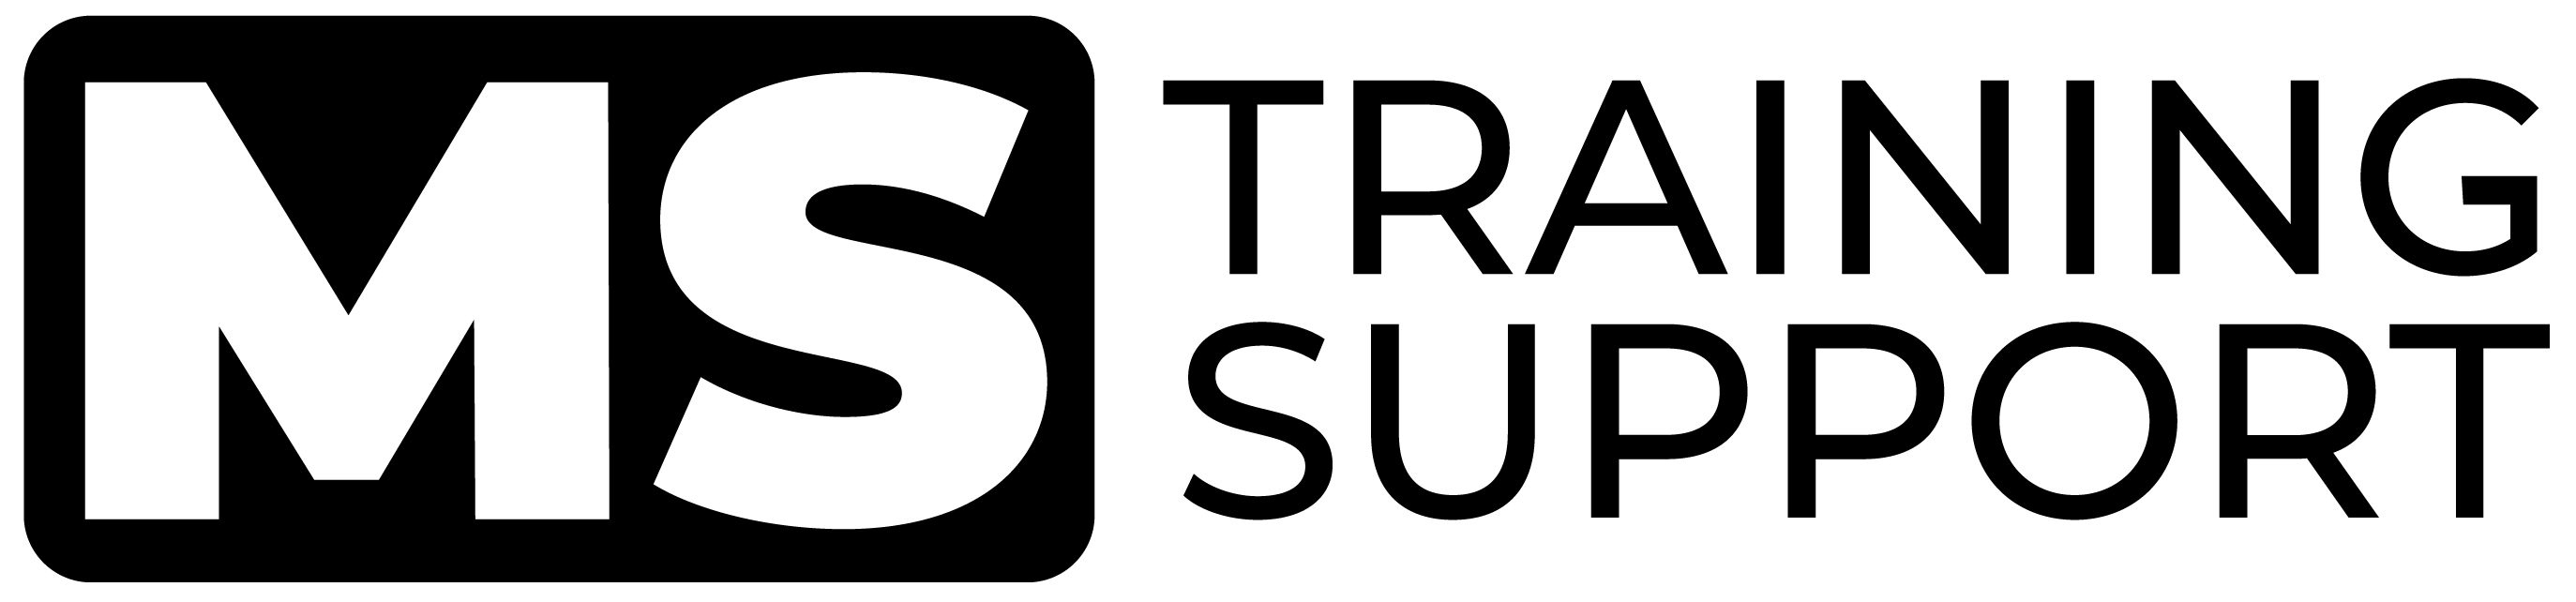 ms training support logo